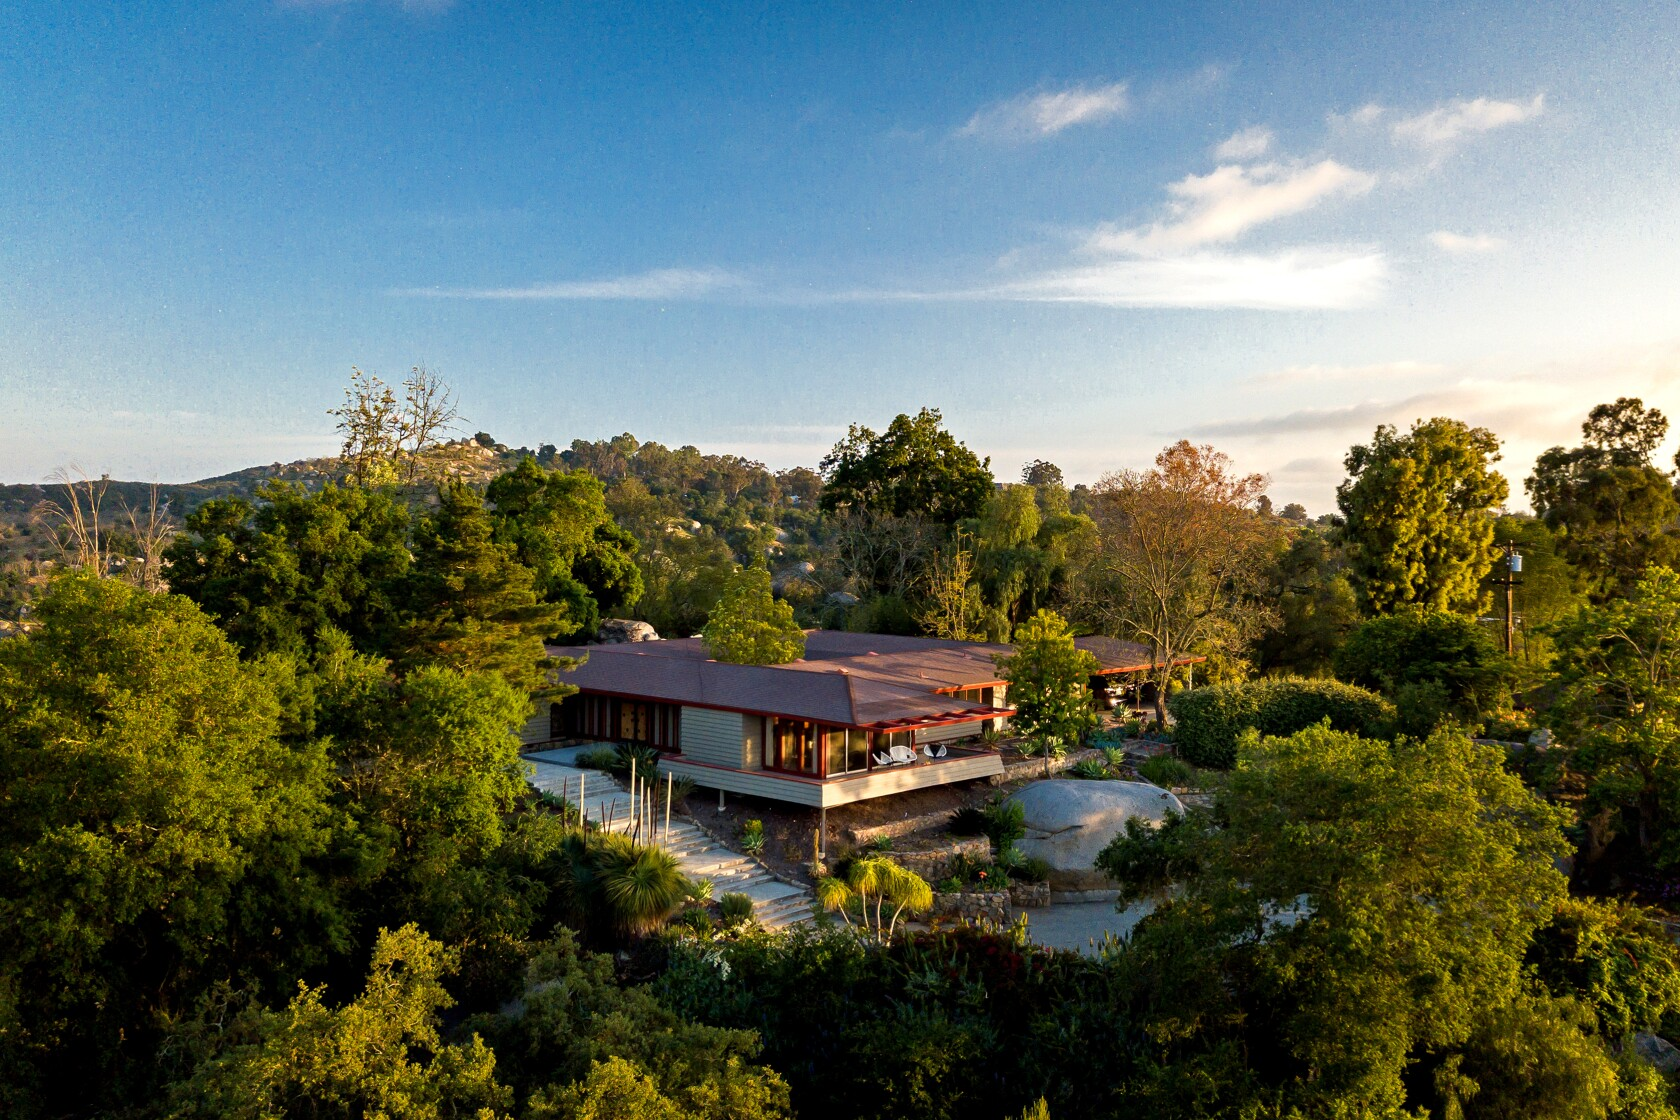 Home of the Week: Feeling groovy in Escondido's wide-open spaces